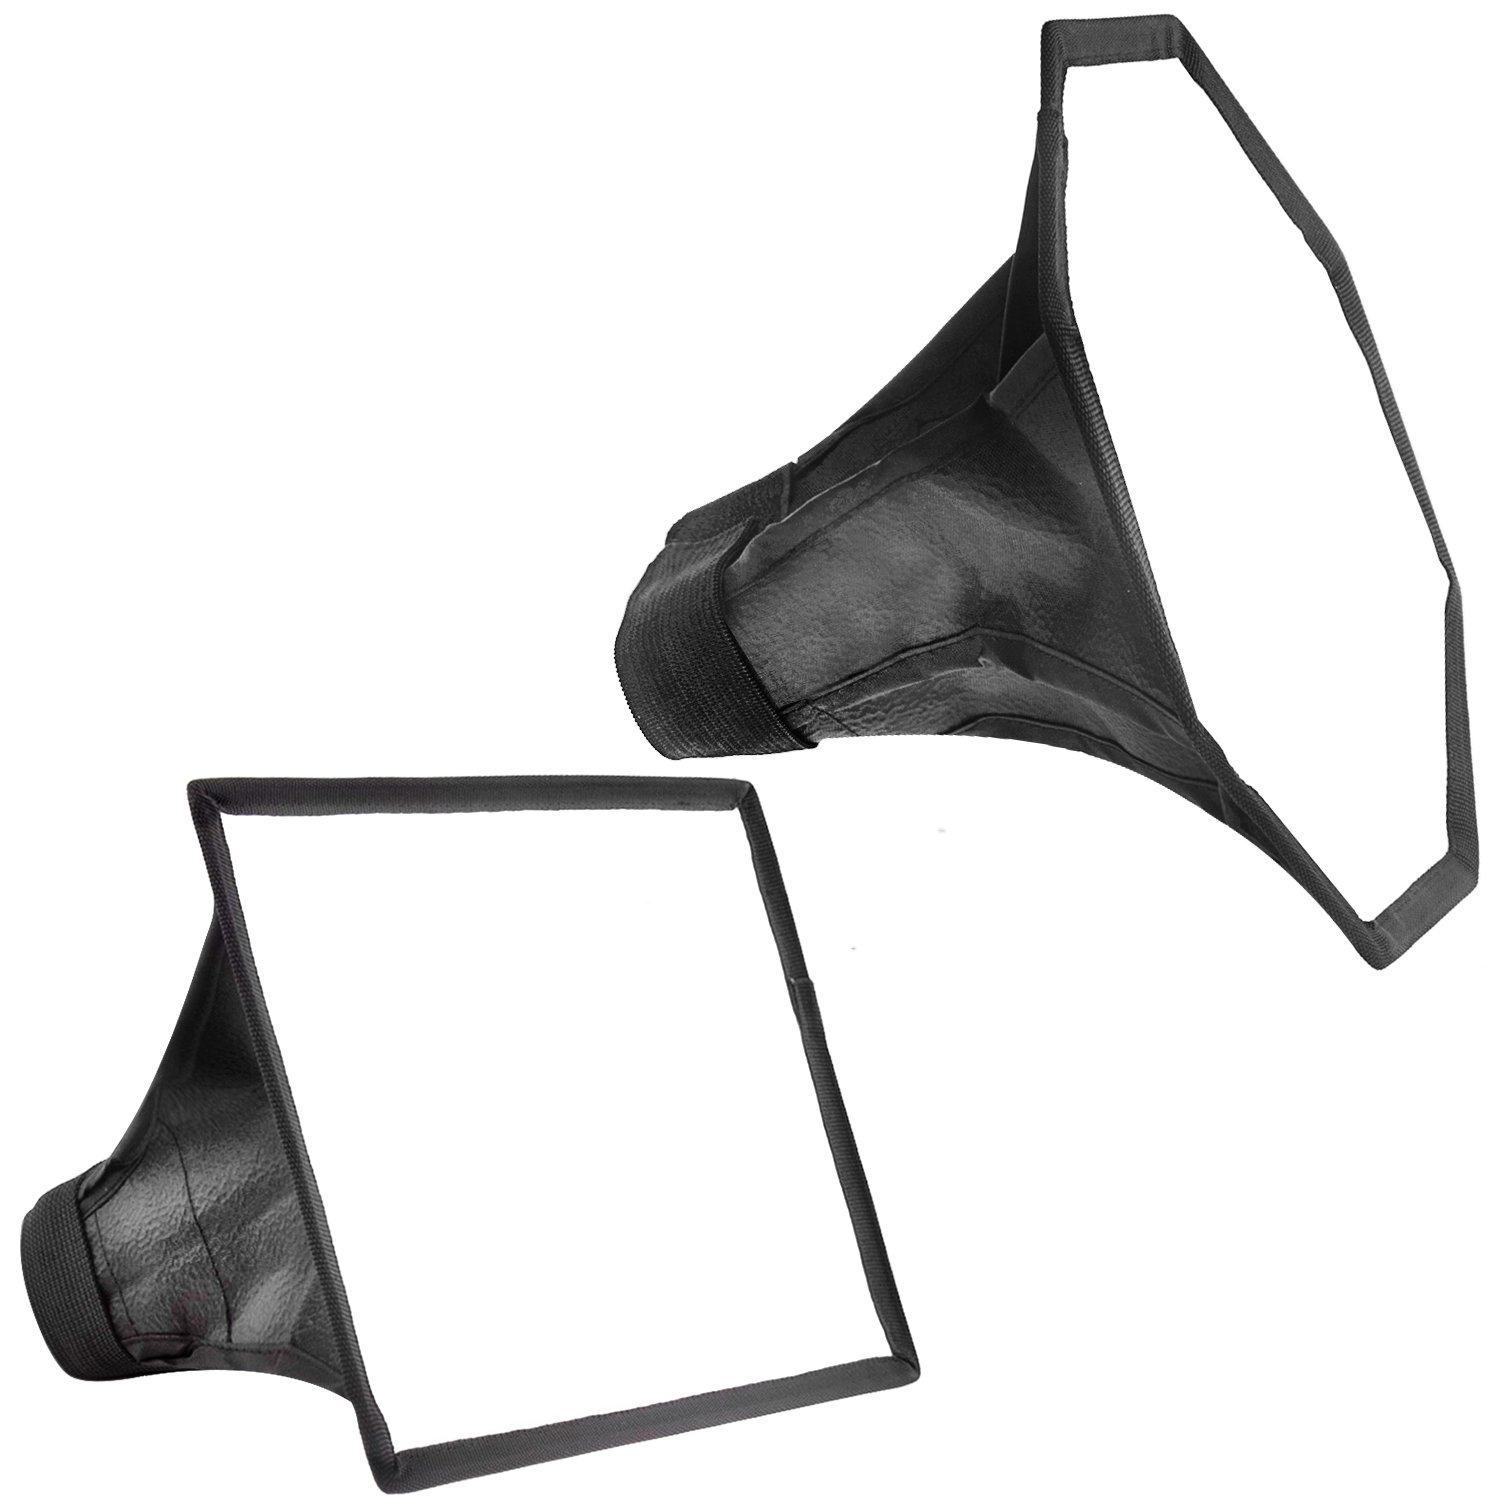 Neewer Studio Softbox Flash Diffuser Kit Includes 6x8 inches